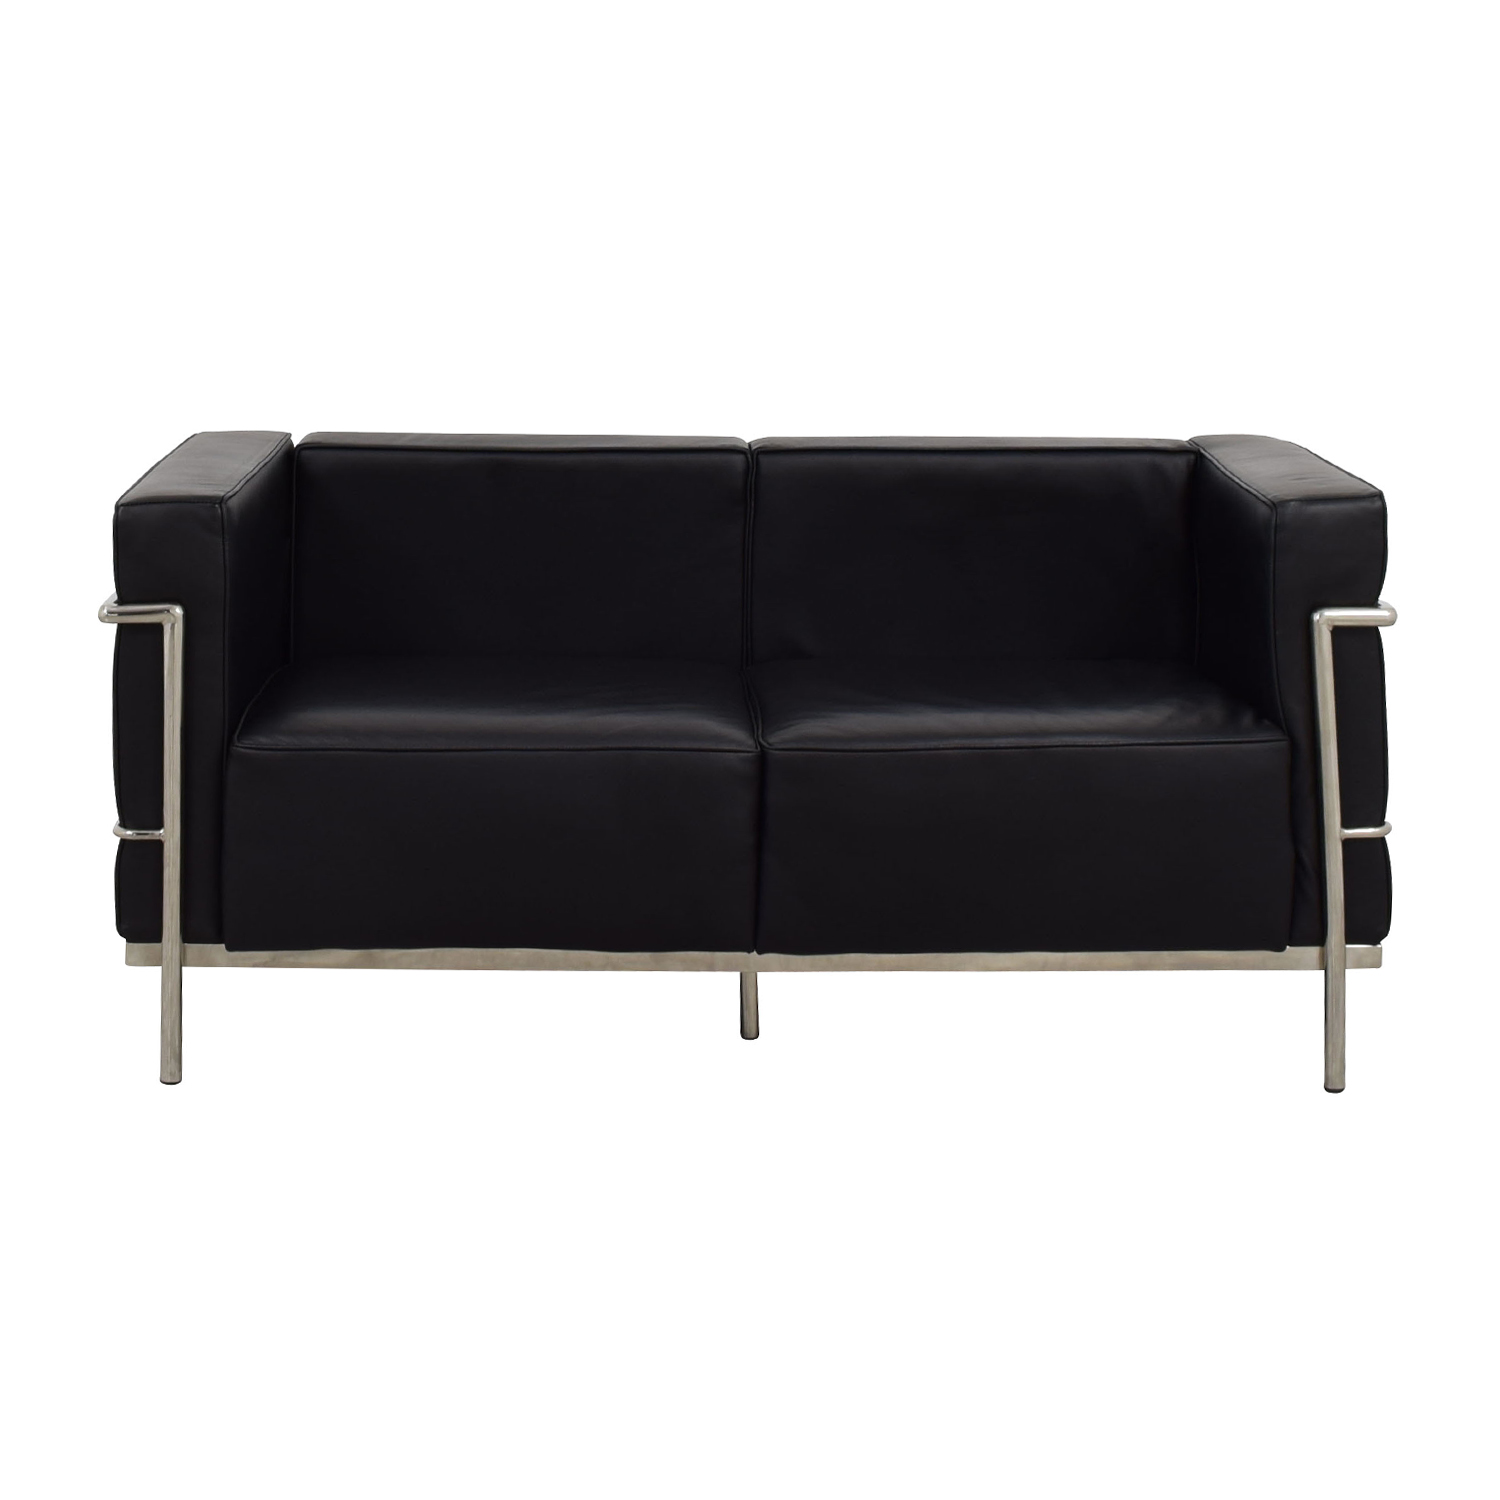 Modway Charles Grande Loveseat on sale